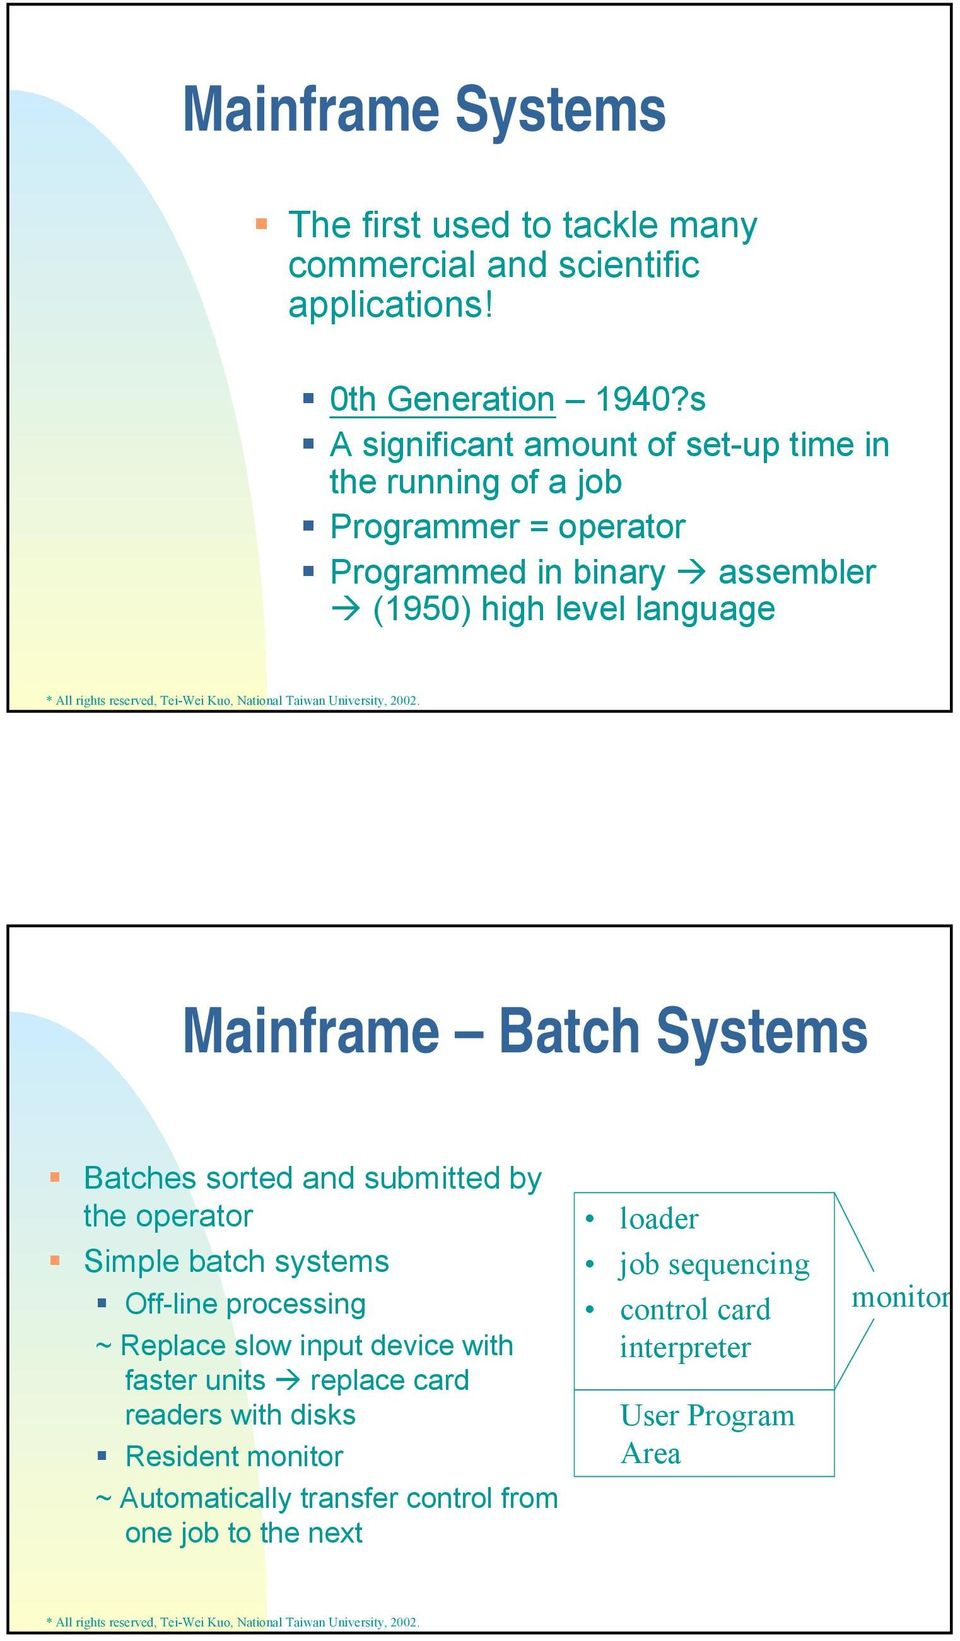 Mainframe Batch Systems Batches sorted and submitted by the operator Simple batch systems Off-line processing ~ Replace slow input device with